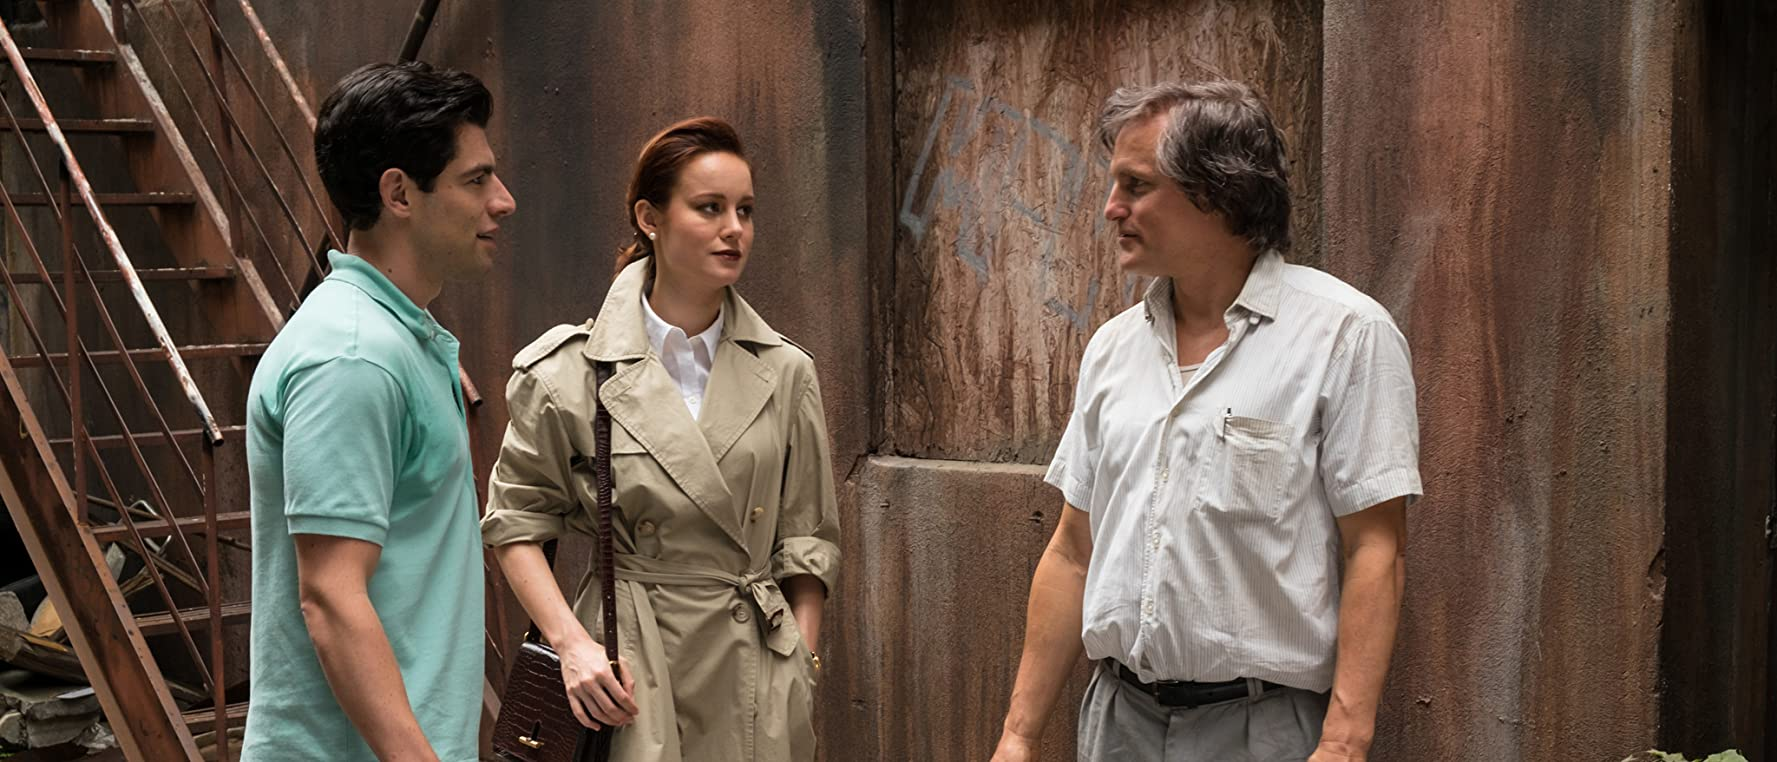 Woody Harrelson, Max Greenfield, and Brie Larson in The Glass Castle (2017)